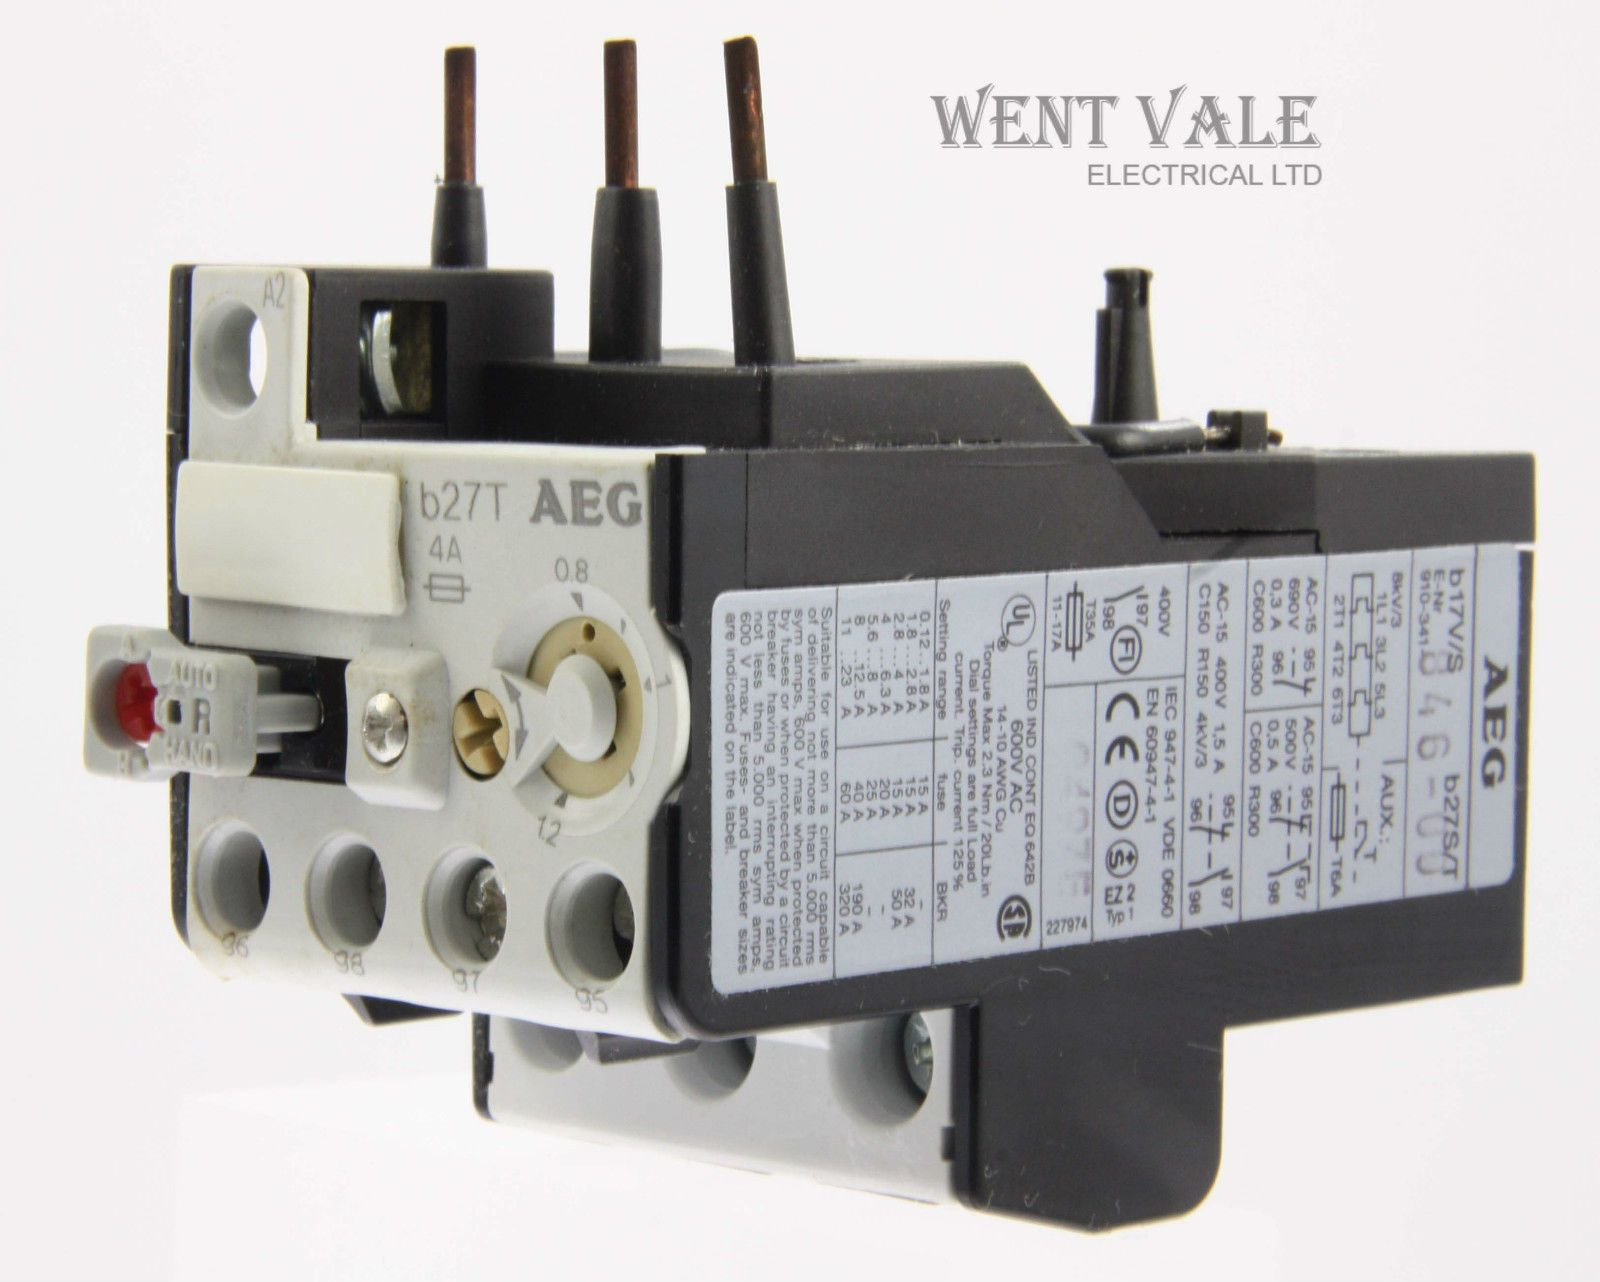 AEG B27T-910-341-846-00 - 4a Thermal Overload Relay 0.8 - 1.2a New ...